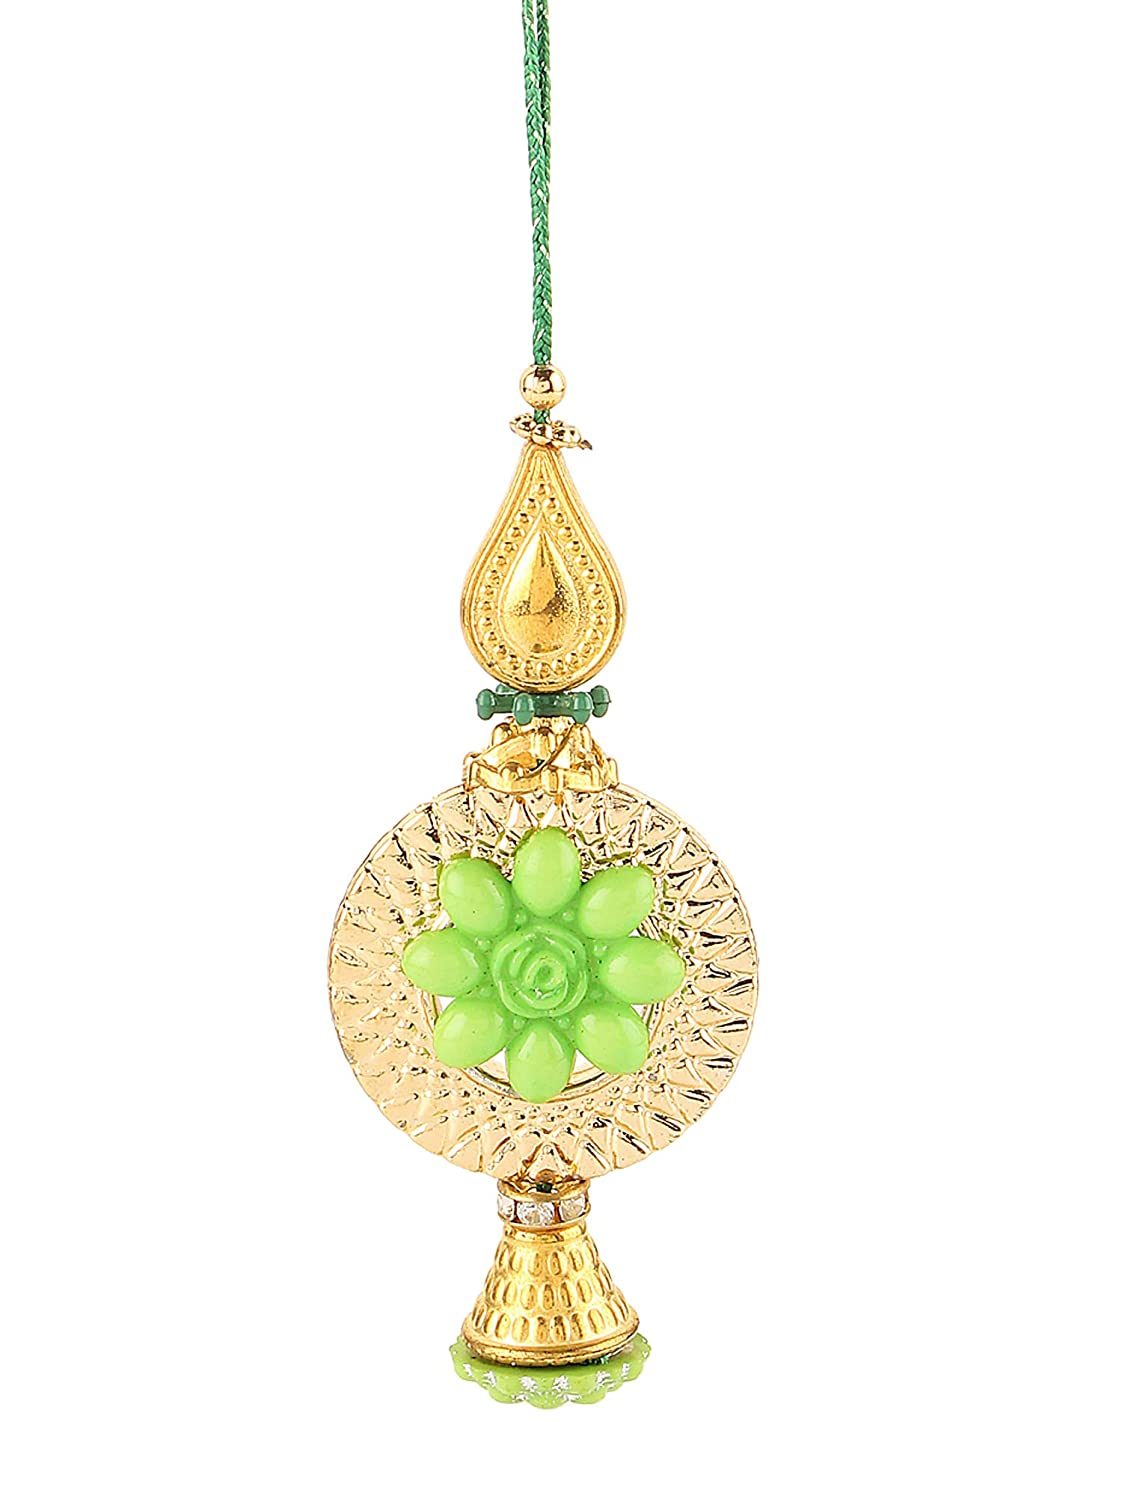 Handcrafted Pyari Bhabhi Green Color Lumba Rakhi Thread for Sister in Law Raksha Bandhan Celebration of Hindu Festival (Green)